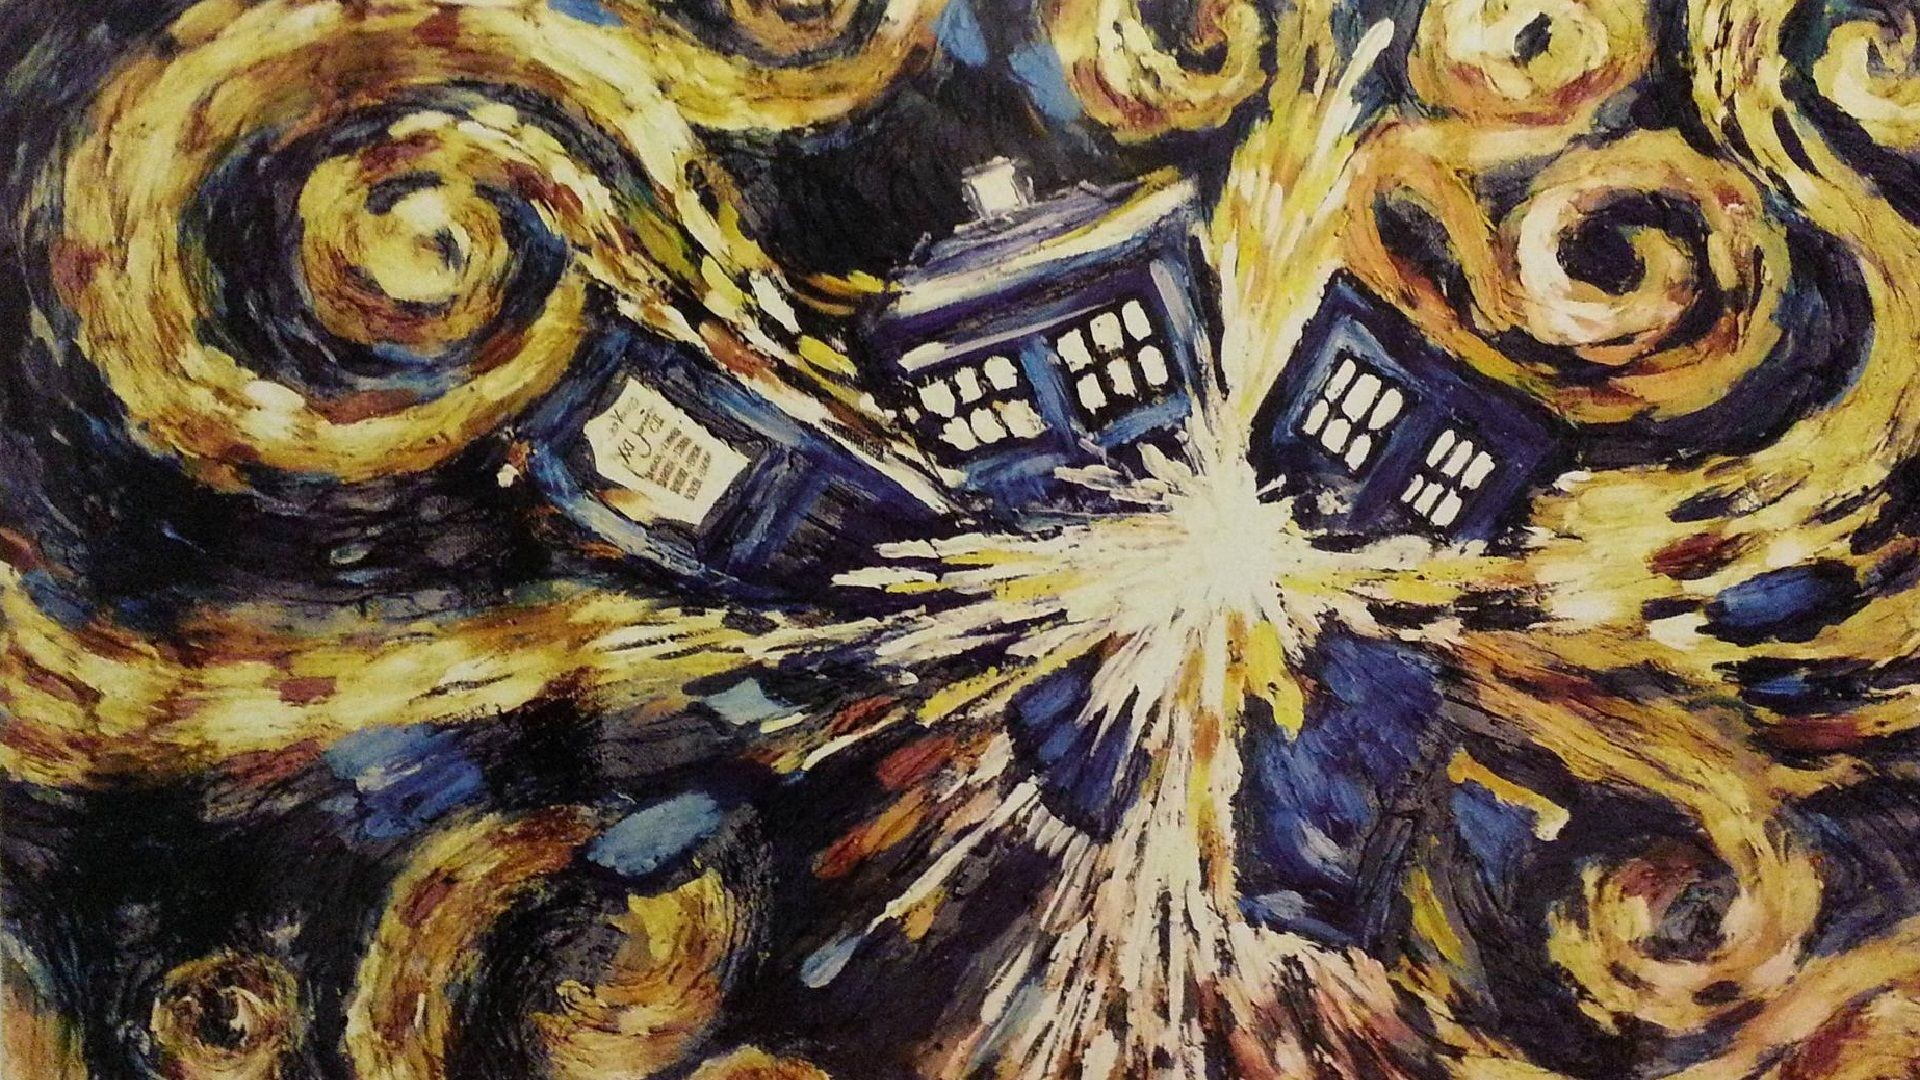 Res: 1920x1080, Dr. Who - Exploding Tardis